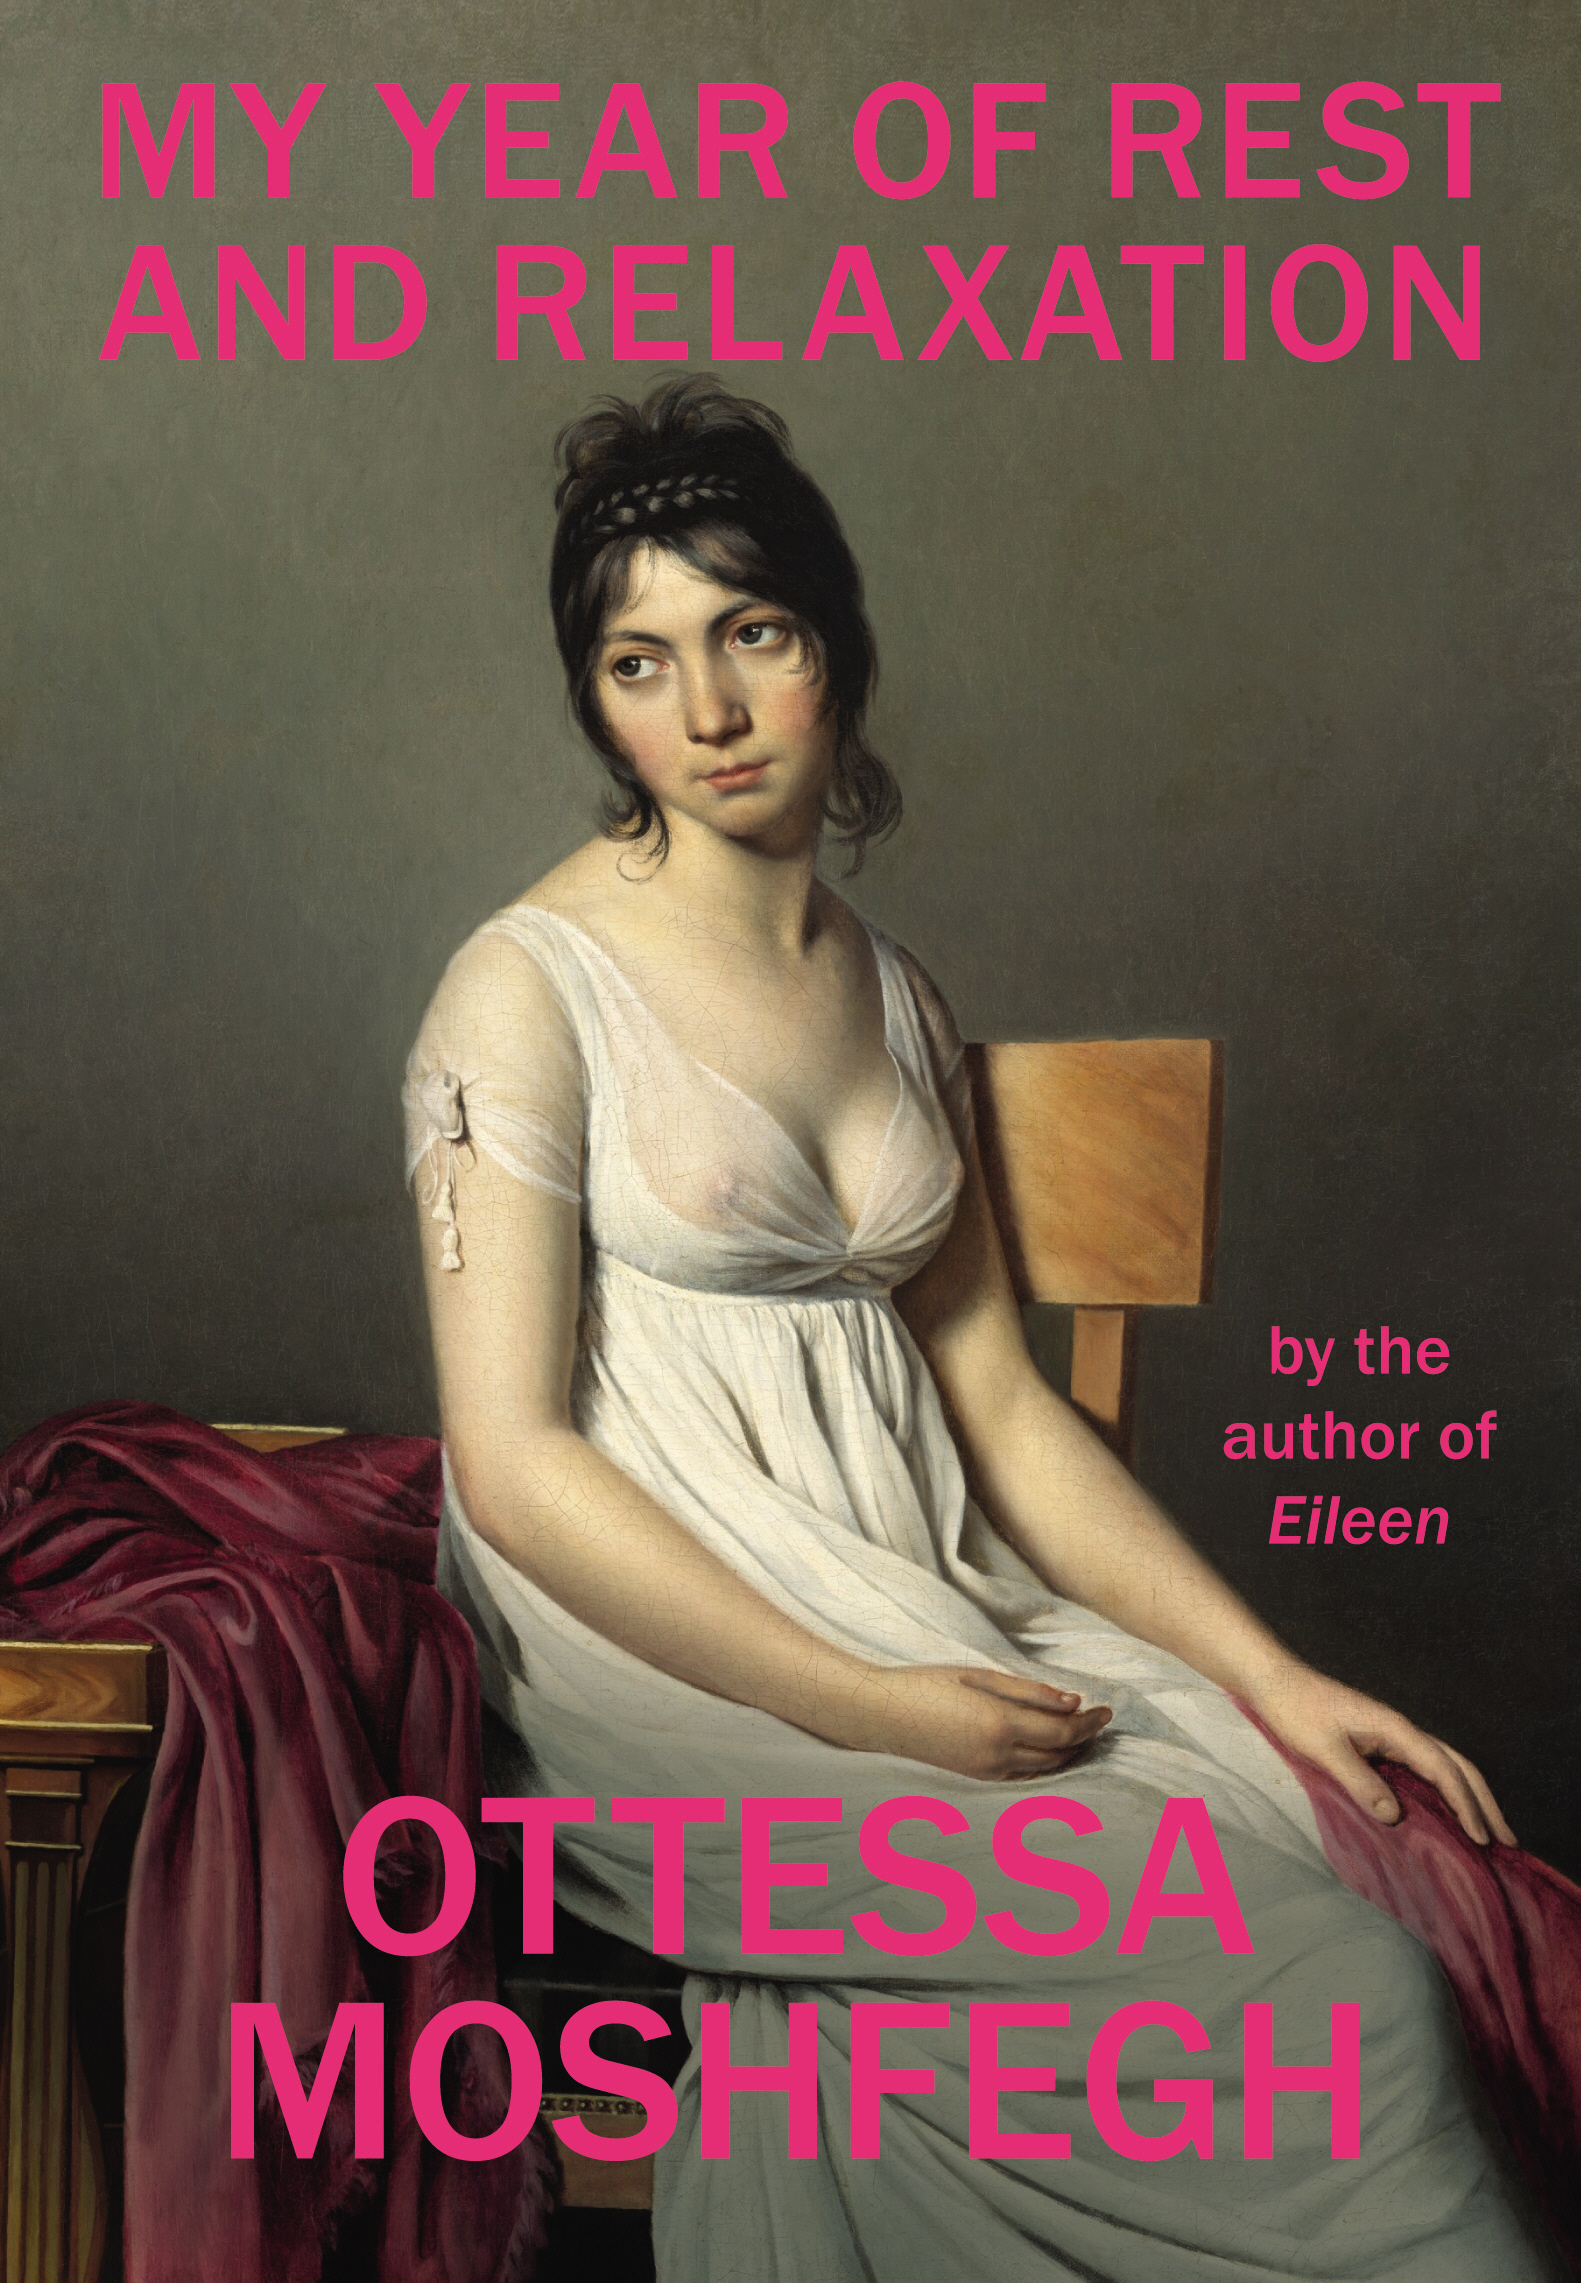 My year of rest and relaxation by ottessa moshfegh pb front cover